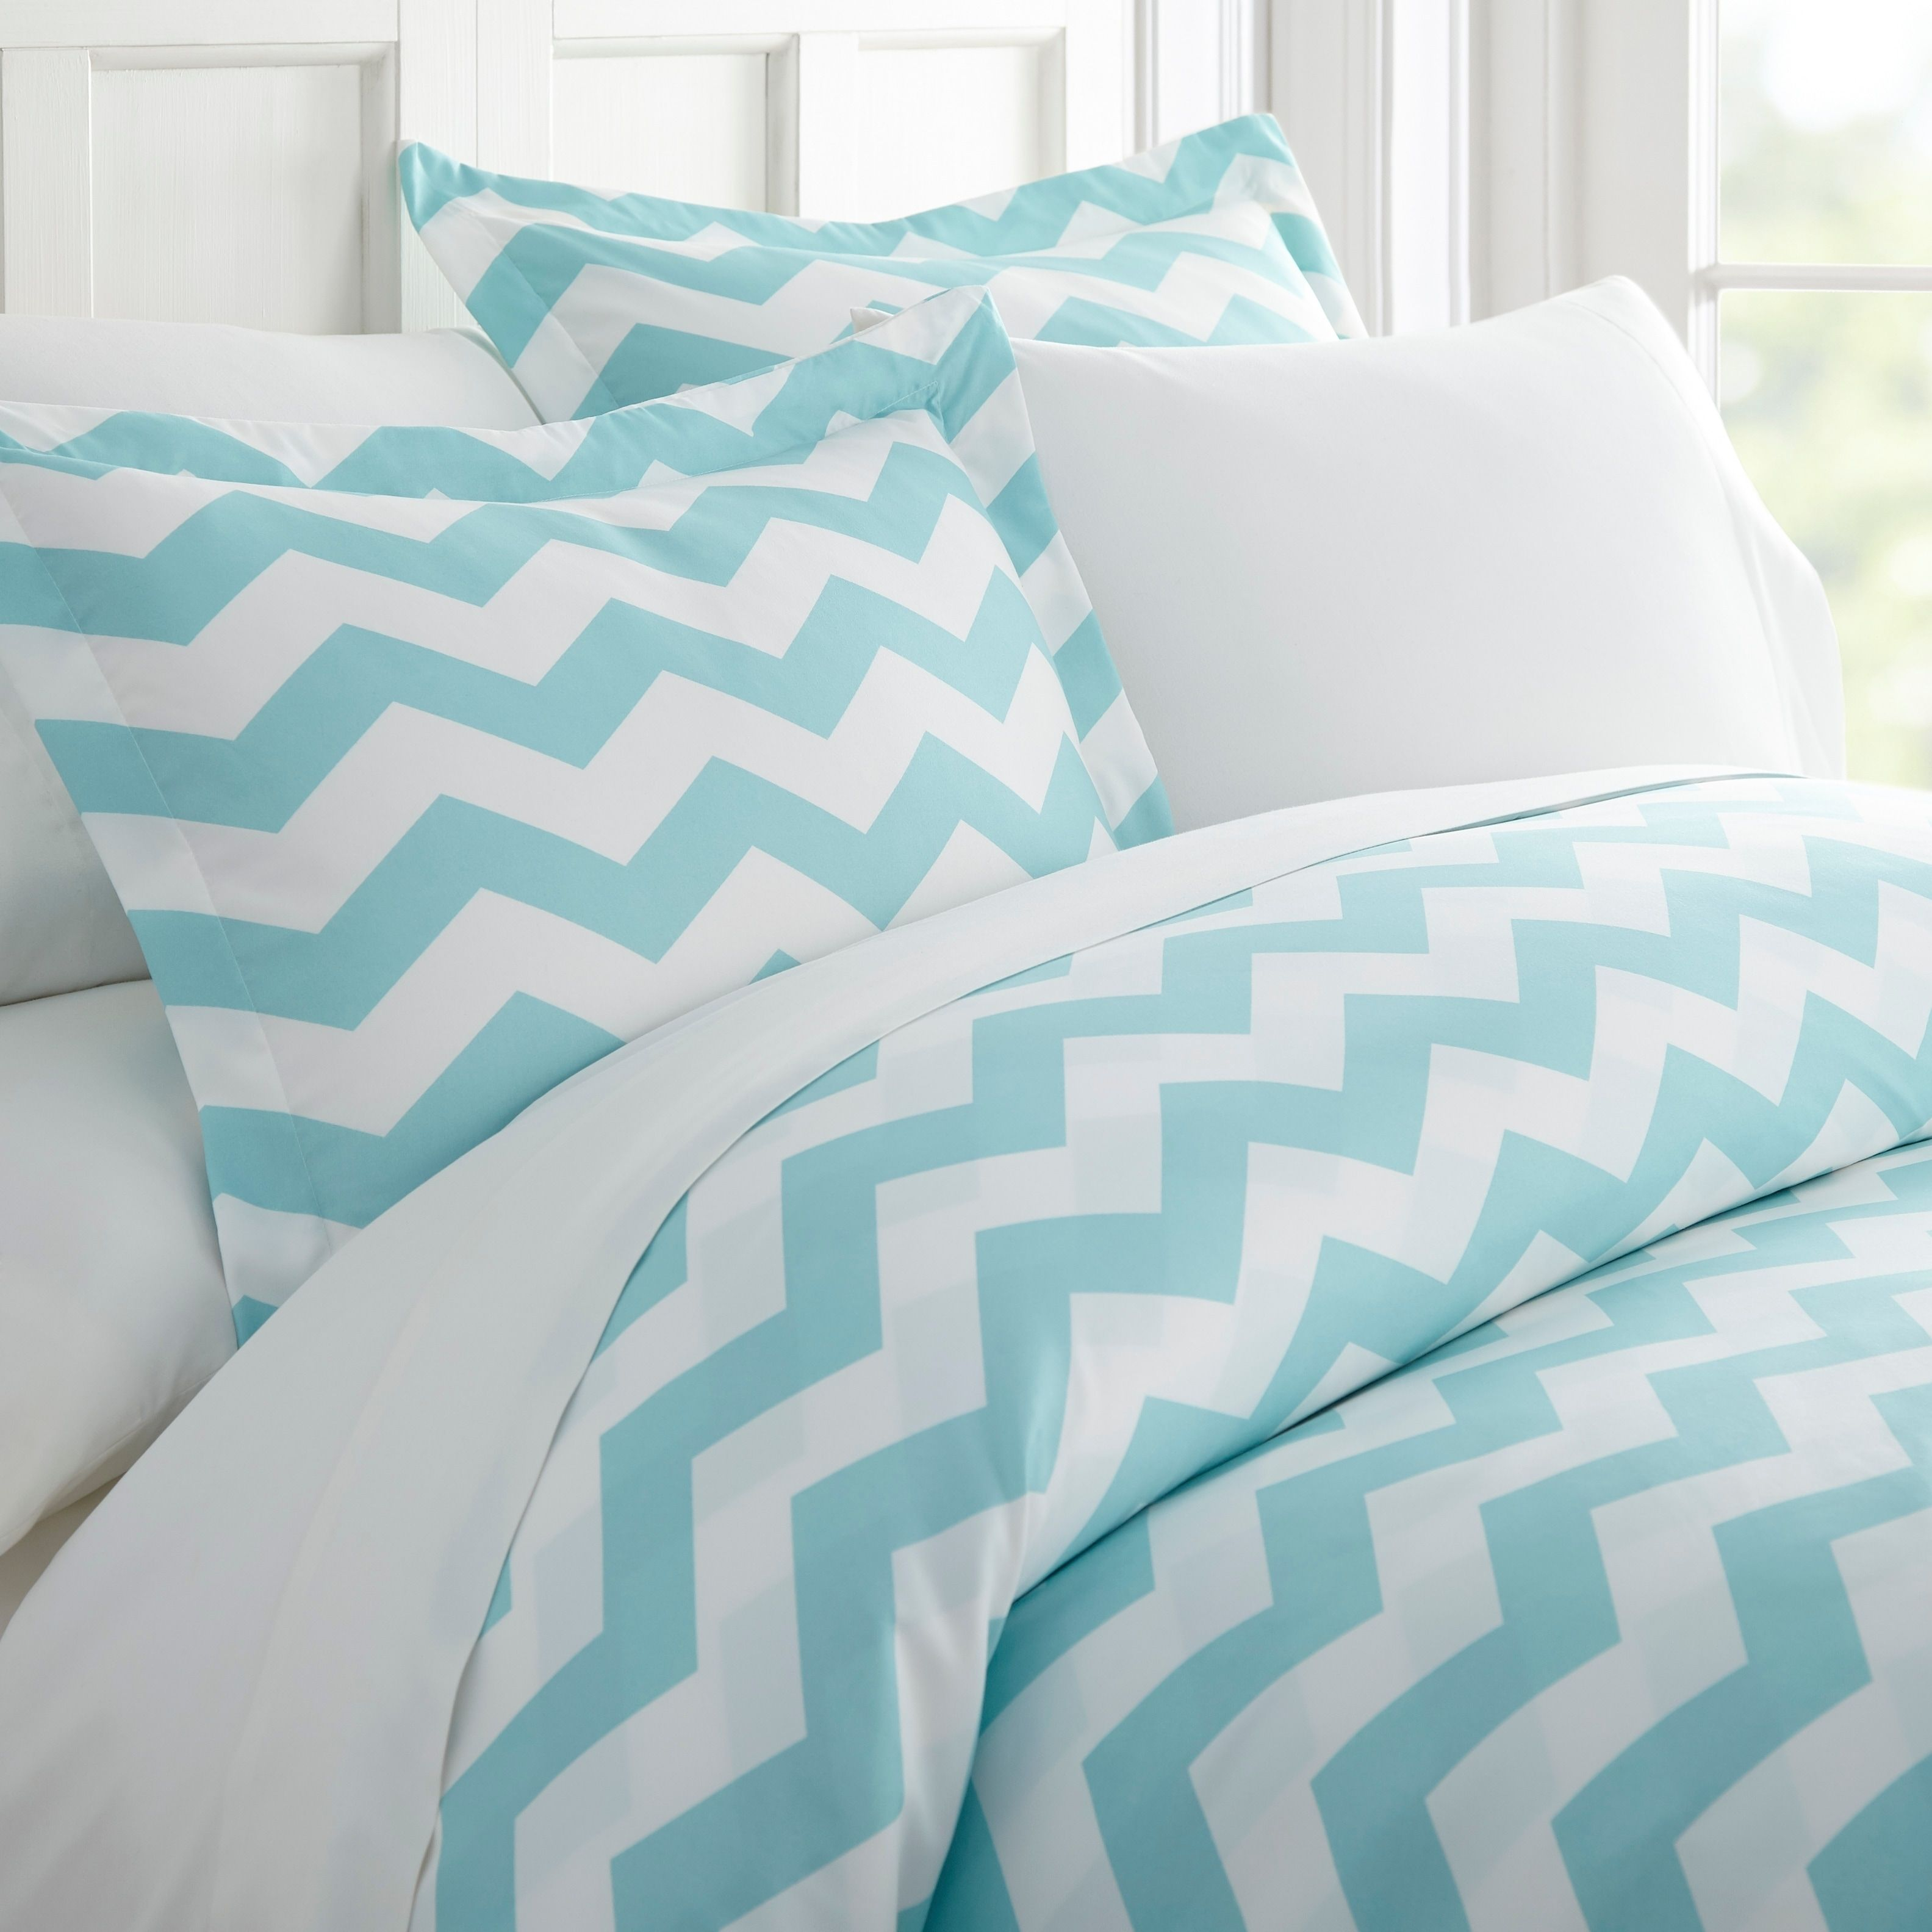 2479a69a88ea5 Becky Cameron Premium Ultra Soft 3 Piece Printed Duvet Cover Set  (Queen/Full - arrow-turquoise), Blue